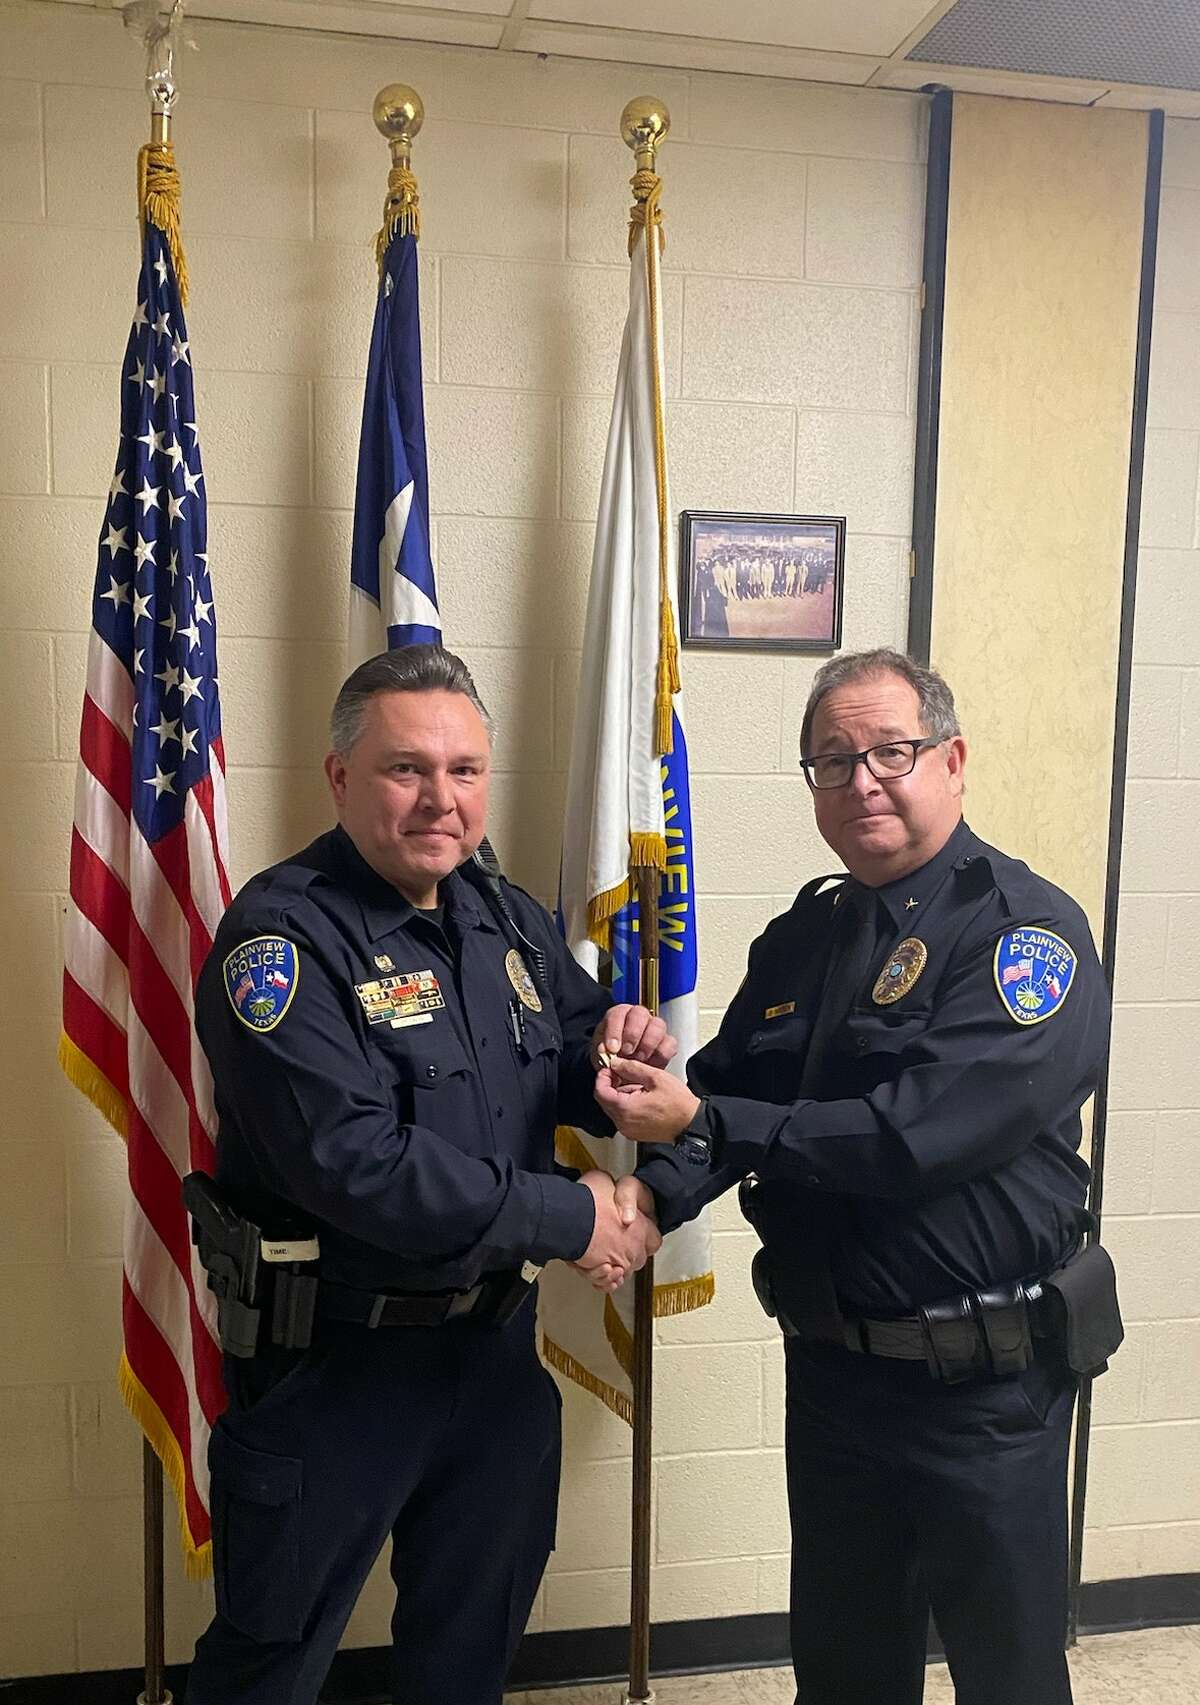 Captain Bill Bridgwater stands with Chief Derrick Watson during a special recognition. Bridgwater was promoted to Patrol Captain.